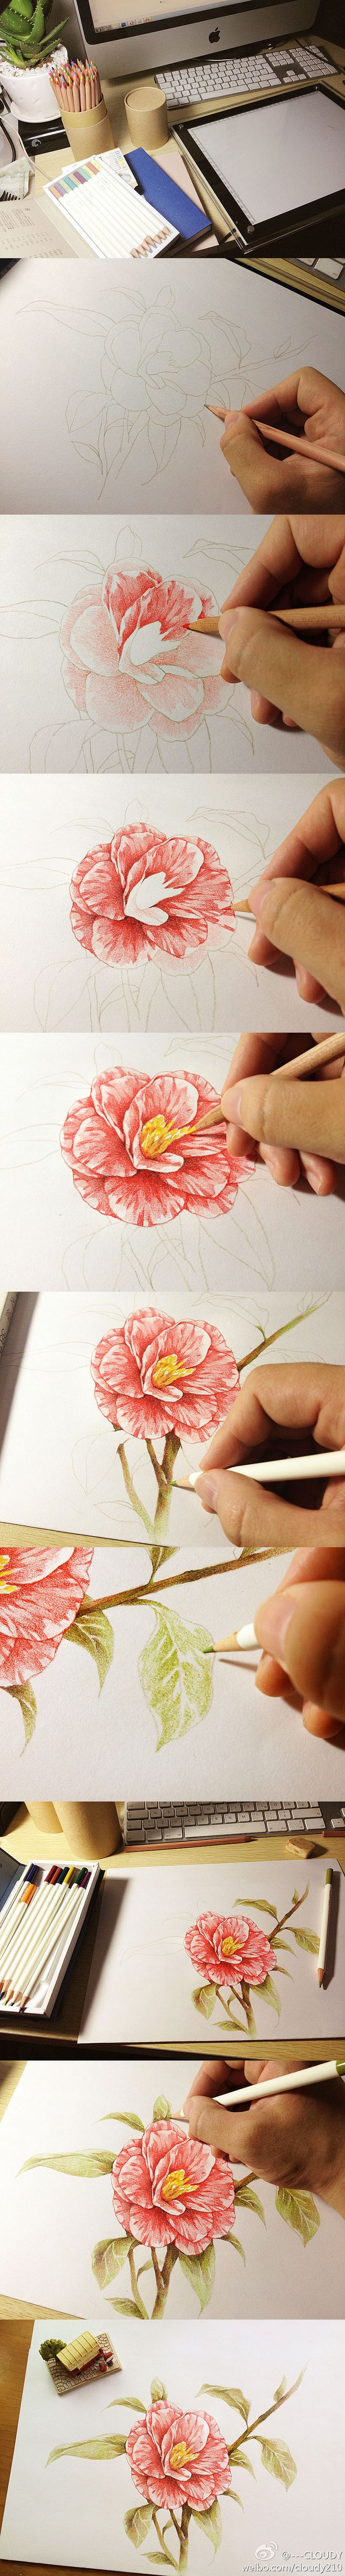 This is really detailed for what I've done with color pencils. But maybe sometimes